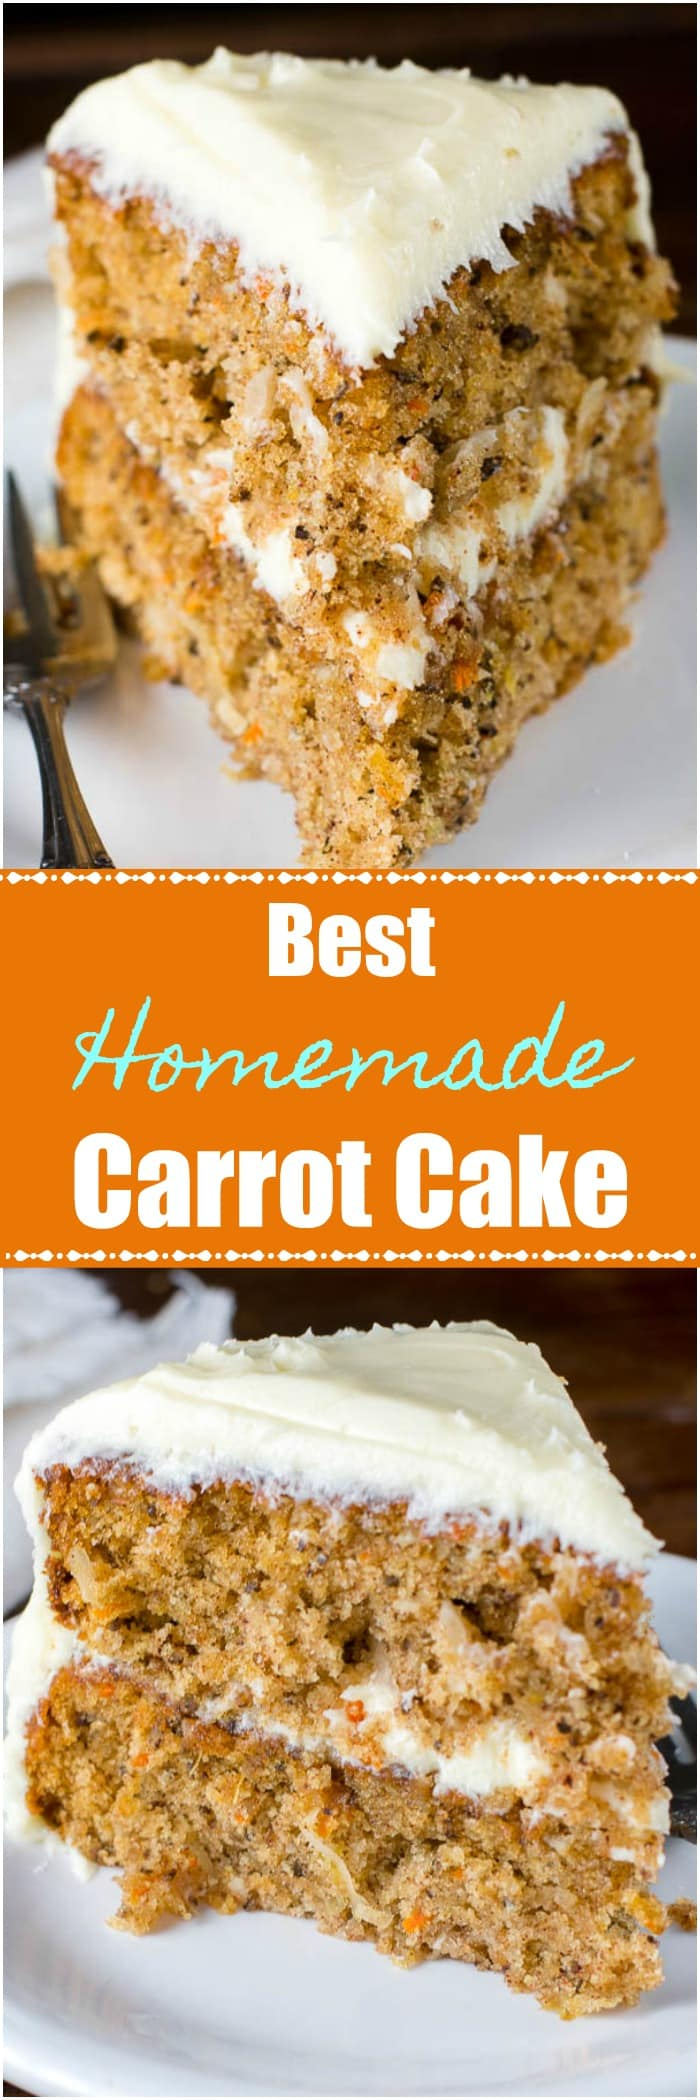 How Much Baking Powder In Carrot Cake